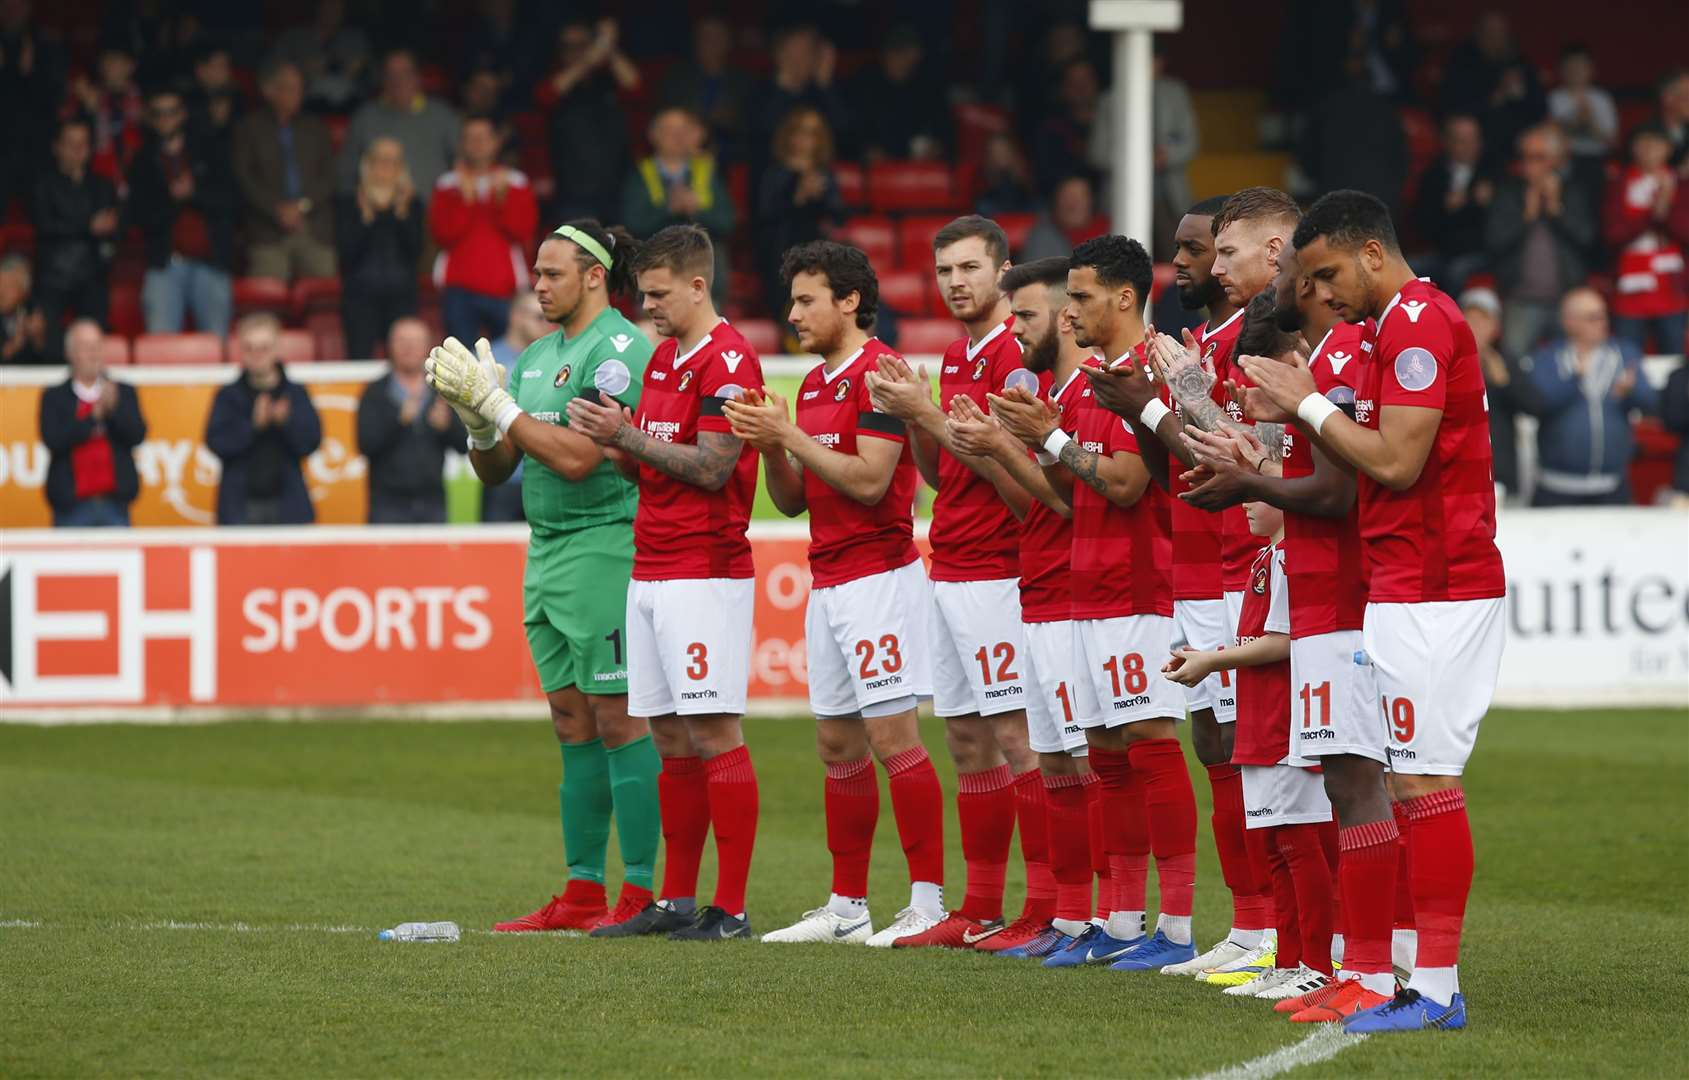 There was a minute's applause for Michael Thalassitis before Ebbsfleet's game against Wrexham Picture: Andy Jones